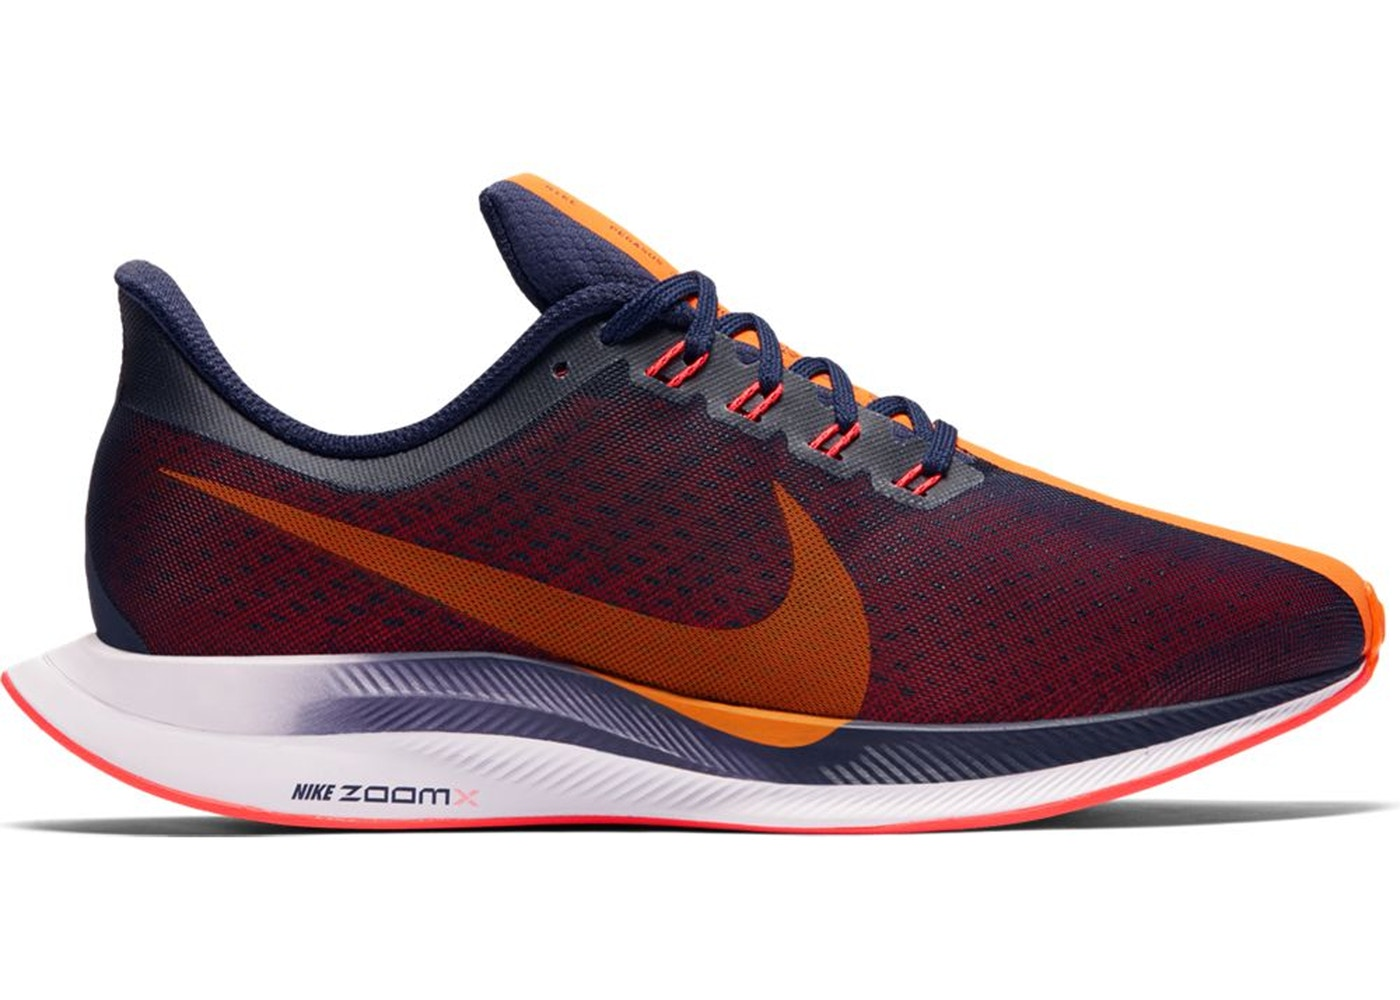 16d2ea3ebbc1 Nike Zoom Pegasus 35 Turbo Blackened Blue Orange Peel (W) - AJ4115-486